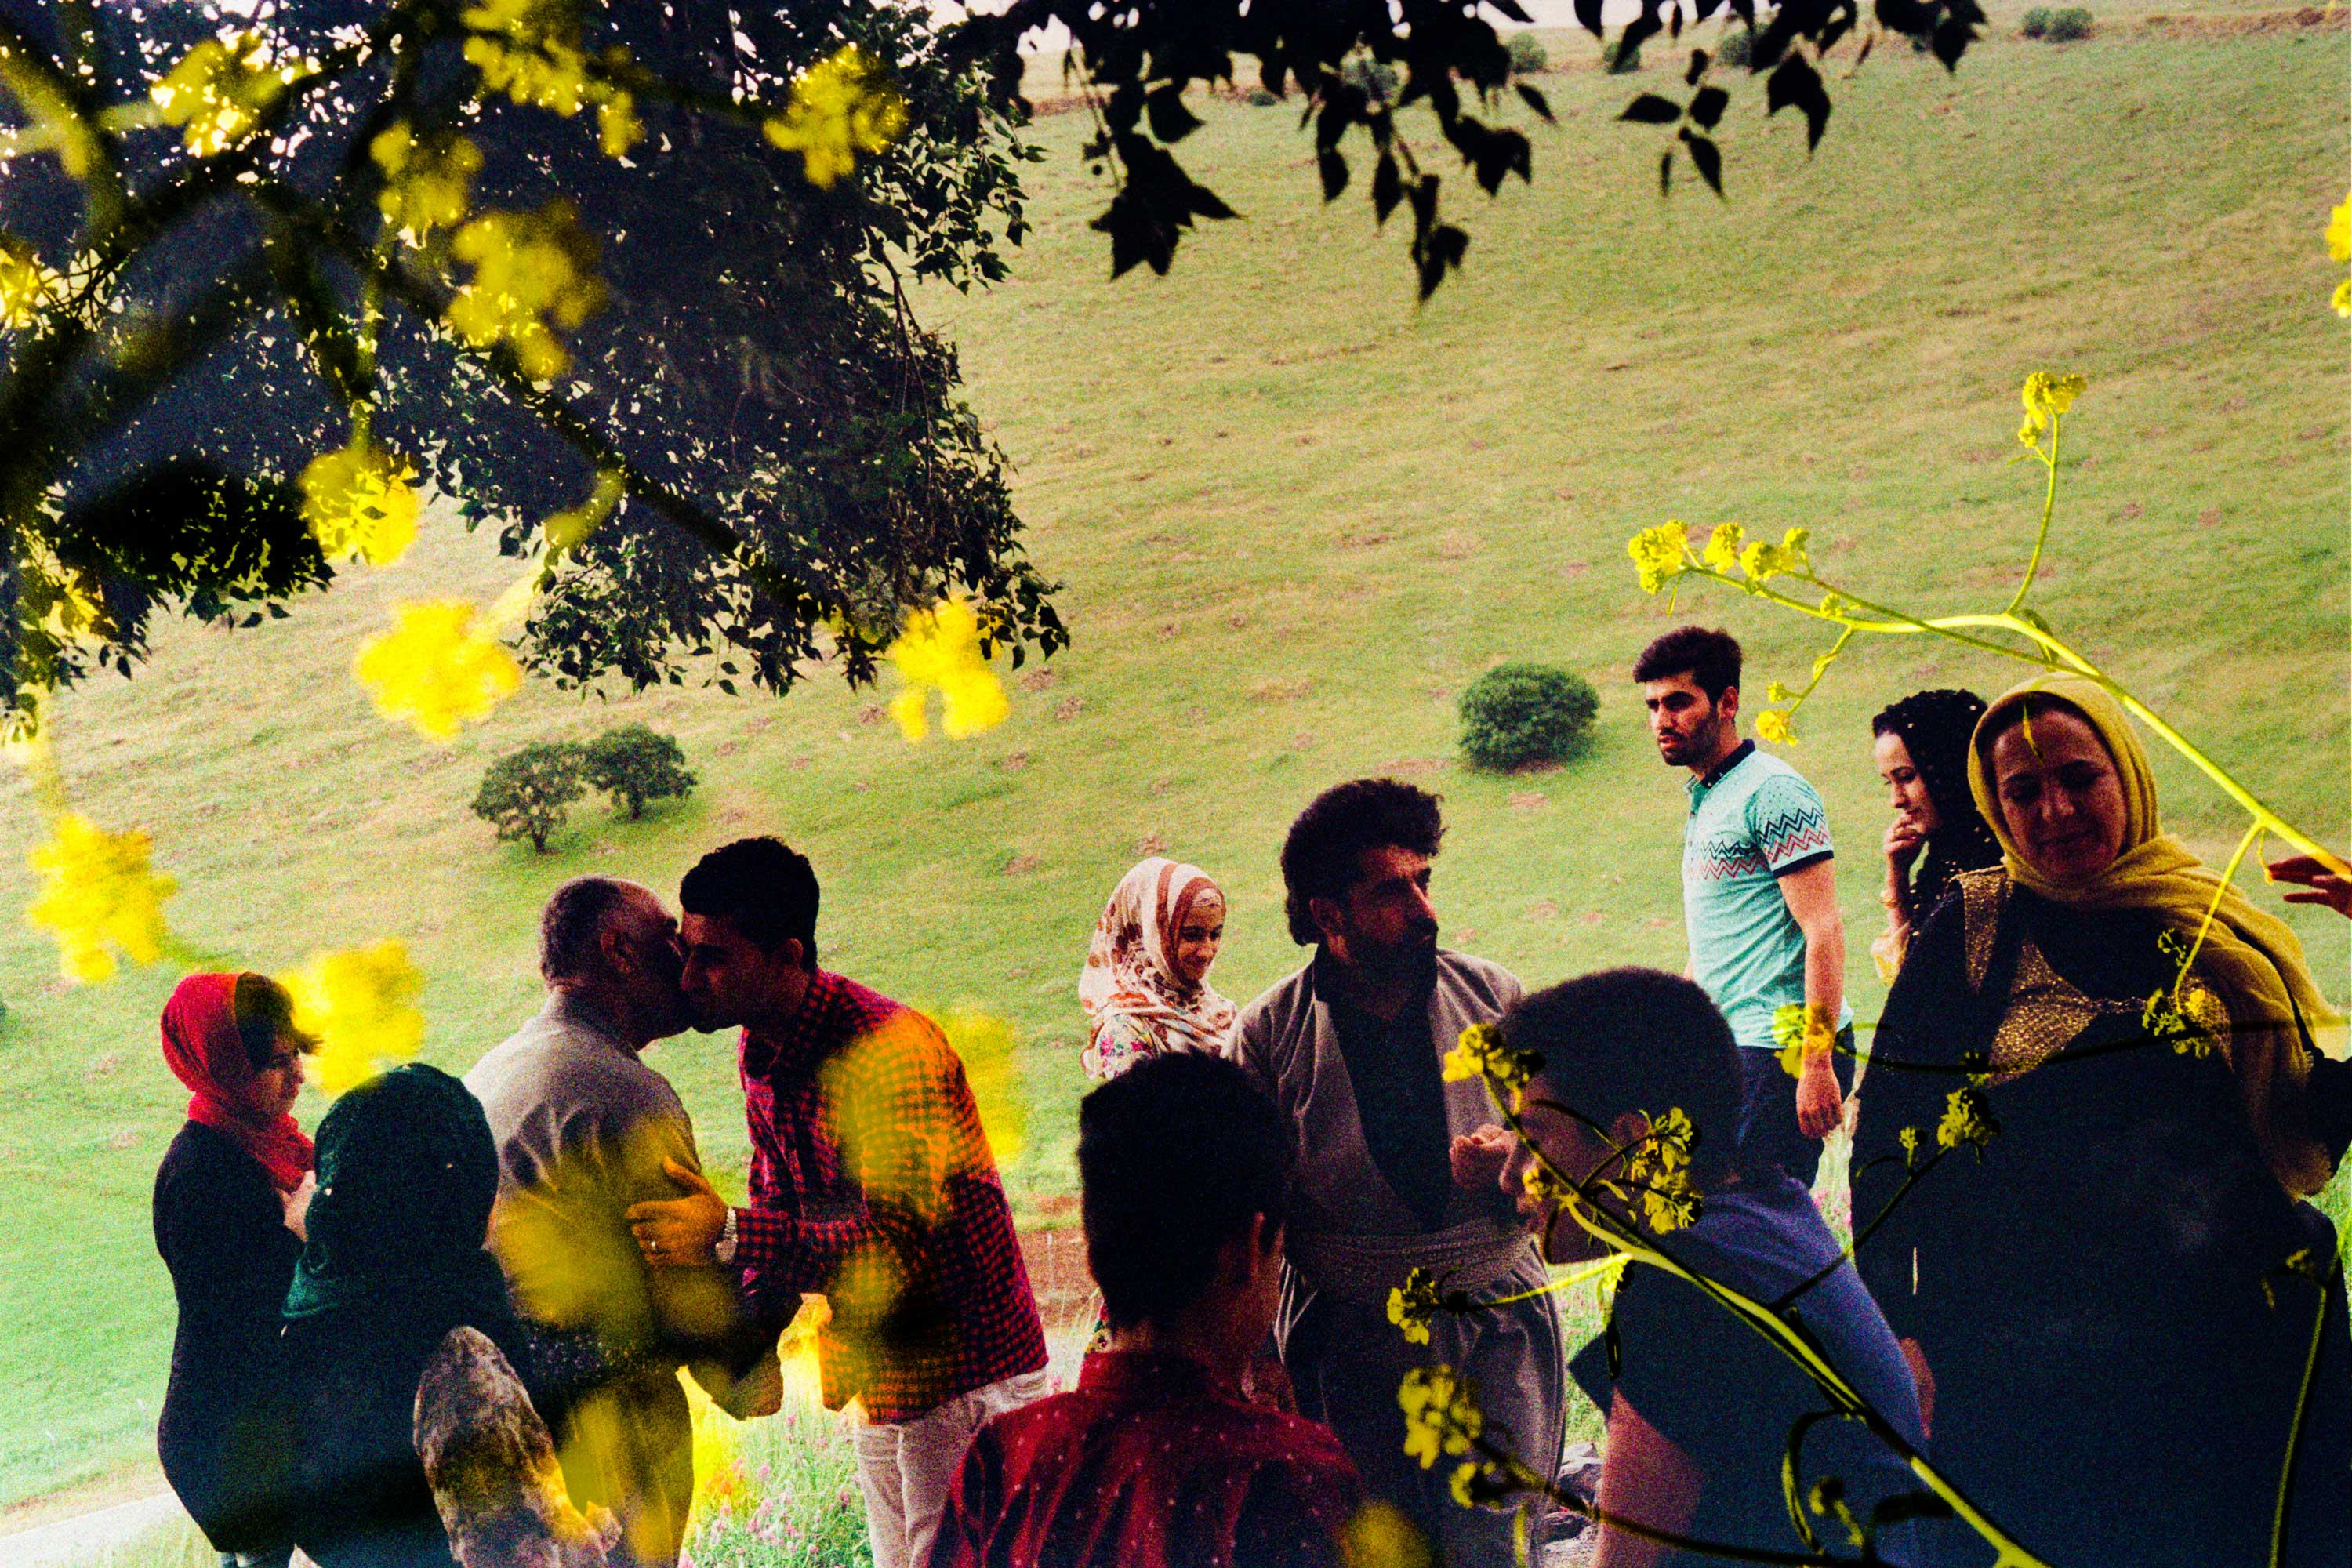 A family enjoys a reunion gathering in the hilly outskirts of Ahmad Awa, near the border of Iran, in Iraqi Kurdistan, on May 7, 2016. Many family members who live outside Iraqi Kurdistan will travel from outside the country to visit friends and relatives during the springtime to go on picnics. The family pictured here had relatives living in Australia who came to visit them.